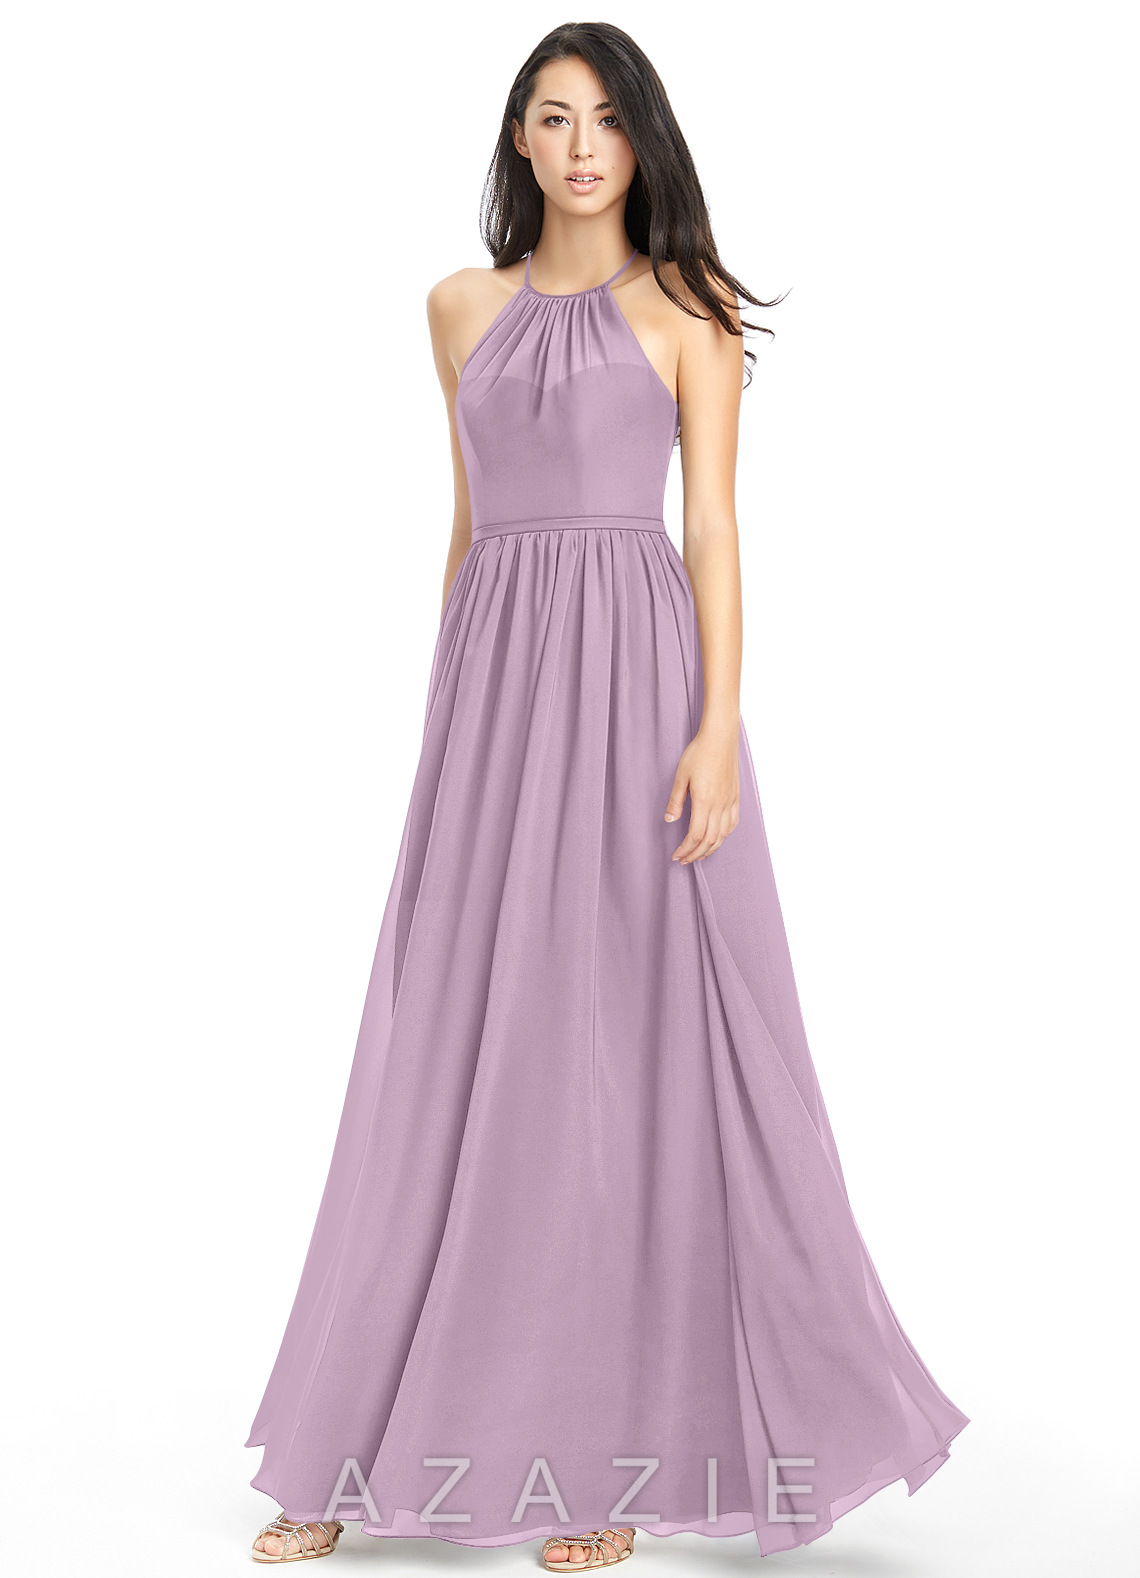 Wisteria bridesmaid dresses wisteria gowns azazie azazie kailyn azazie kailyn ombrellifo Choice Image